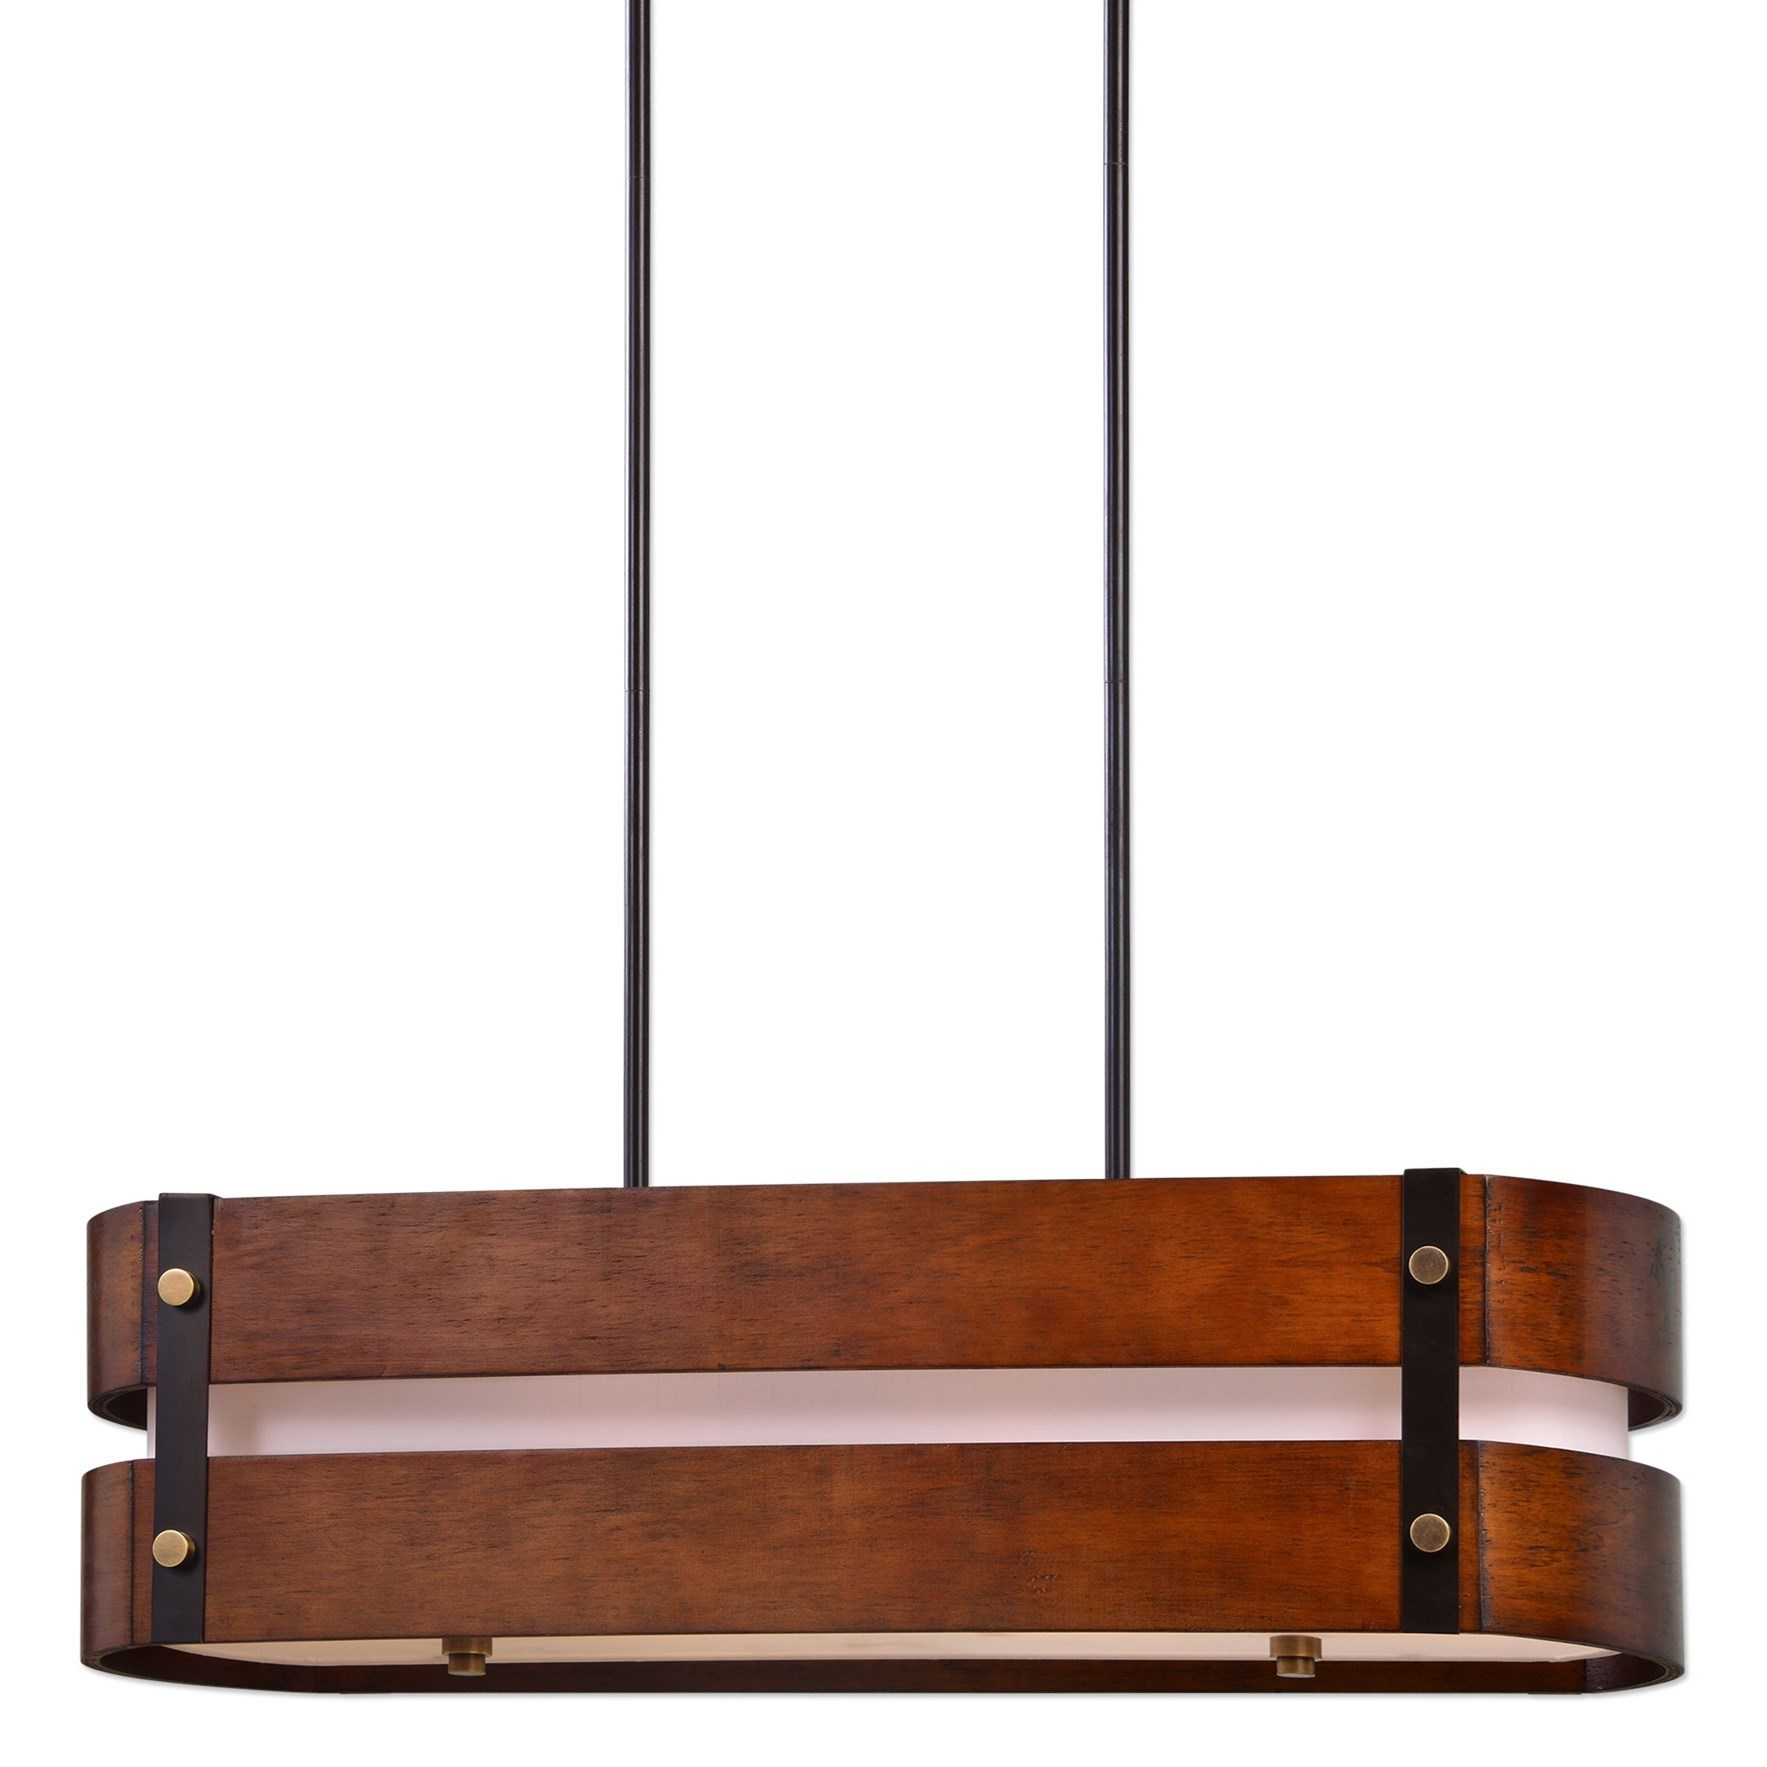 Uttermost Lighting Fixtures Milford 4 Light Oval Wood Chandelier - Item Number: 21281